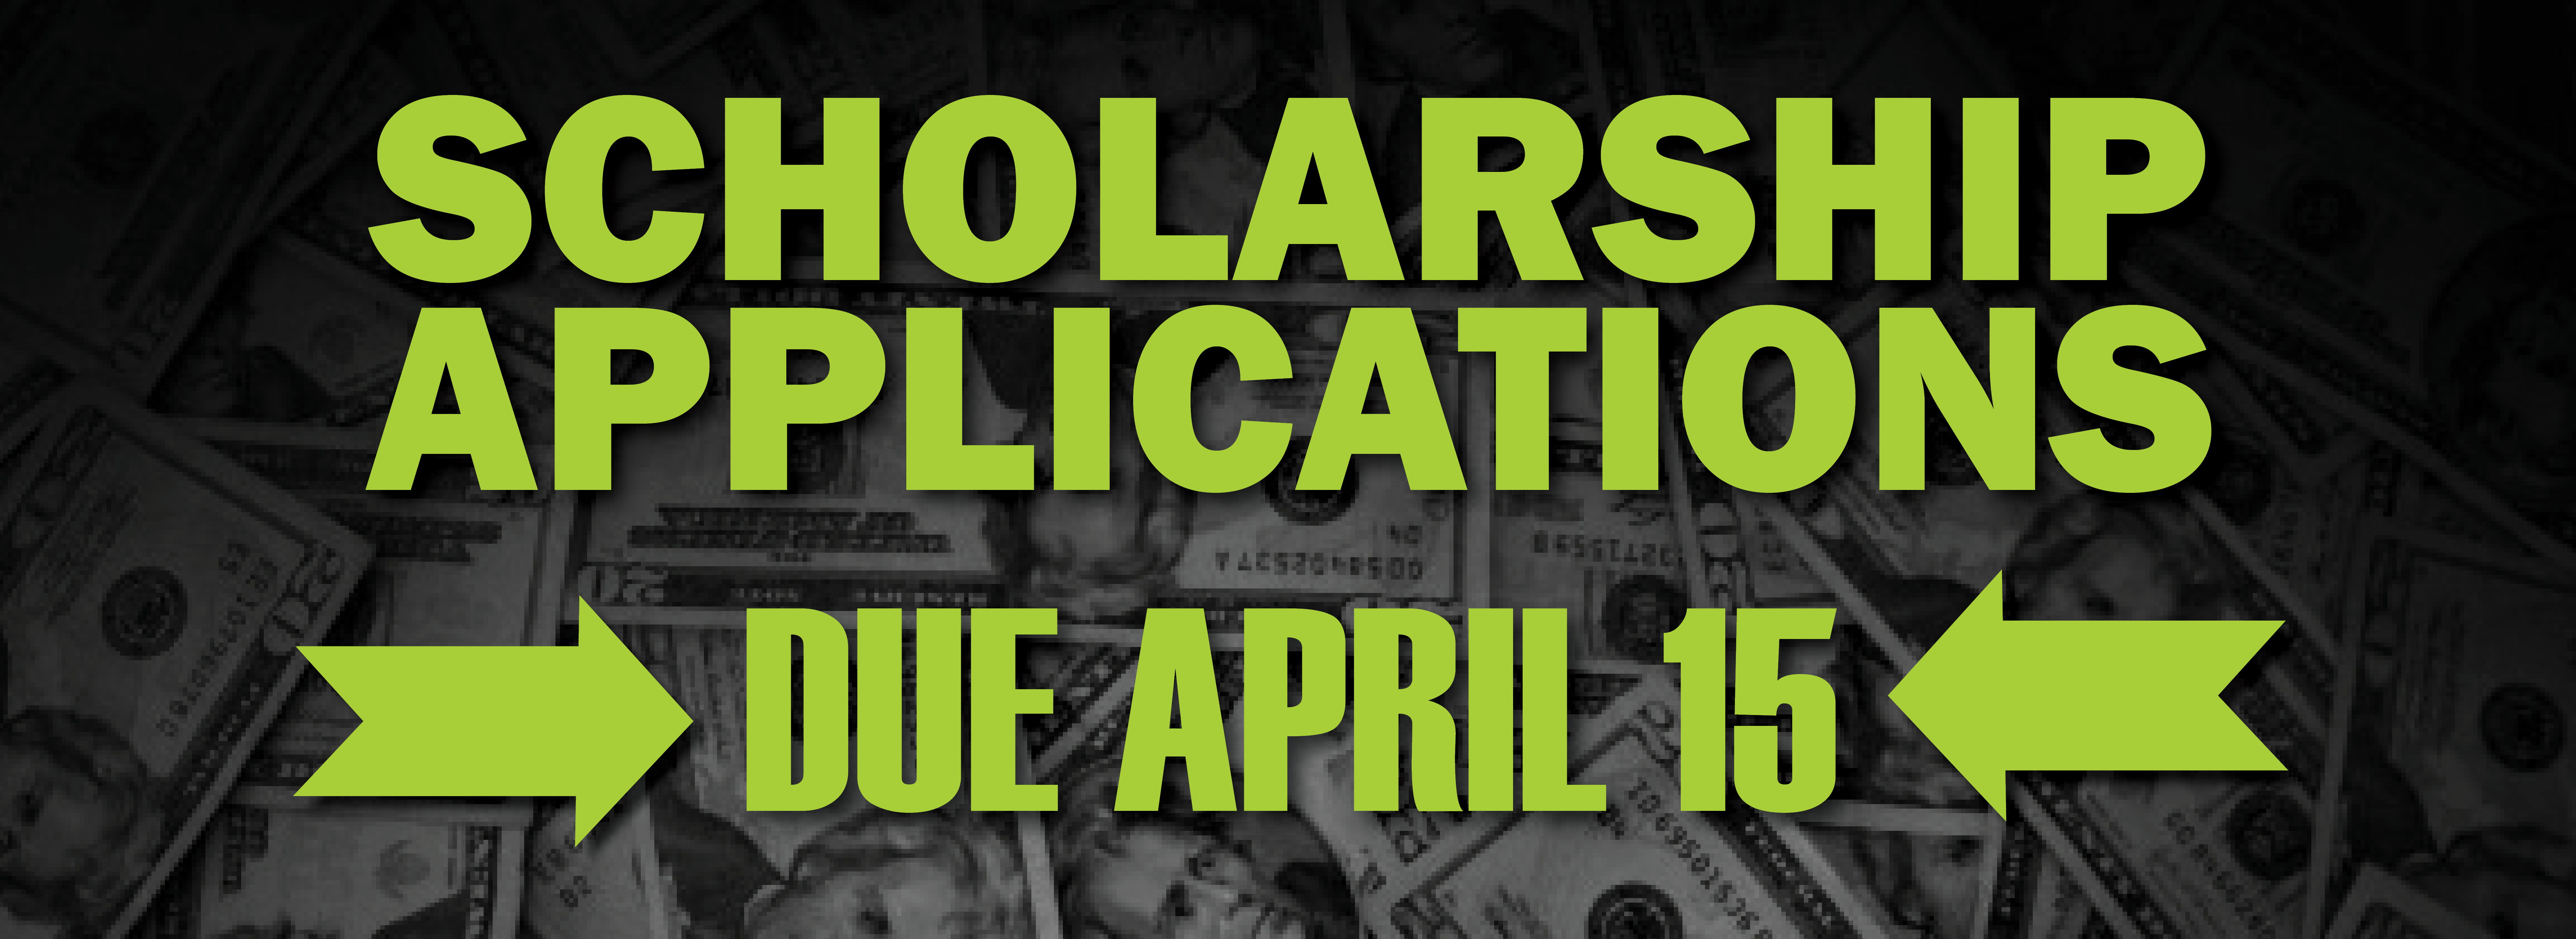 scholarship applications link